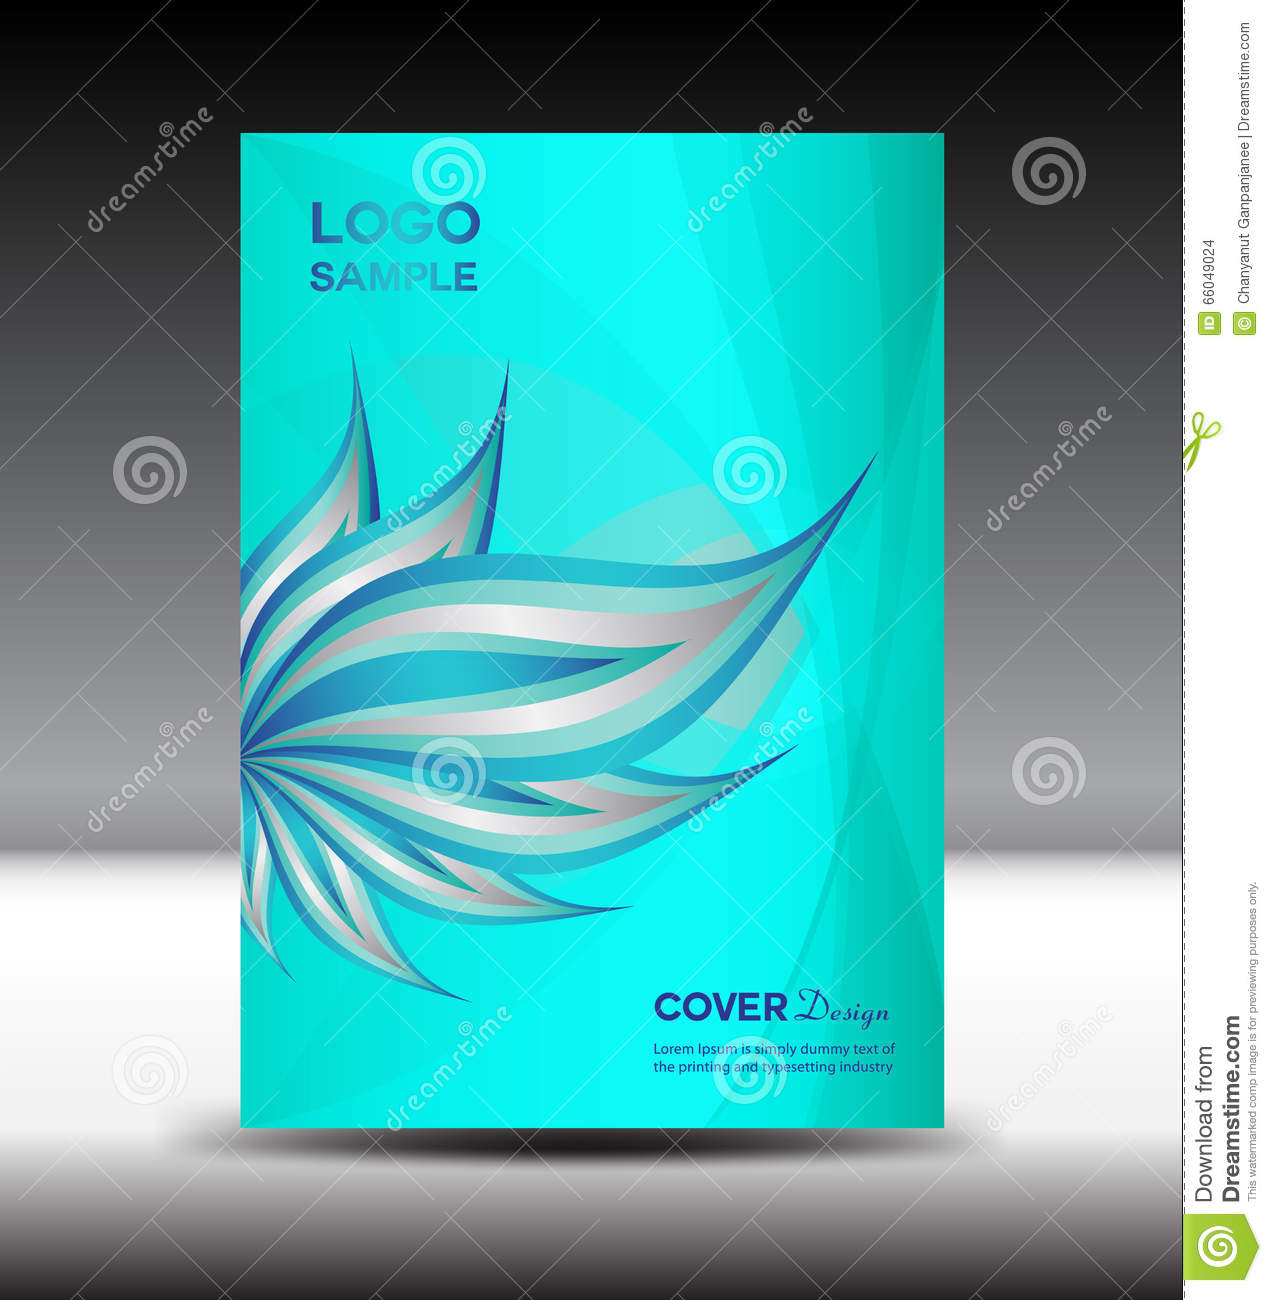 blue cover design template vector brochure white cover design blue cover design template vector brochure white cover design vector illustration